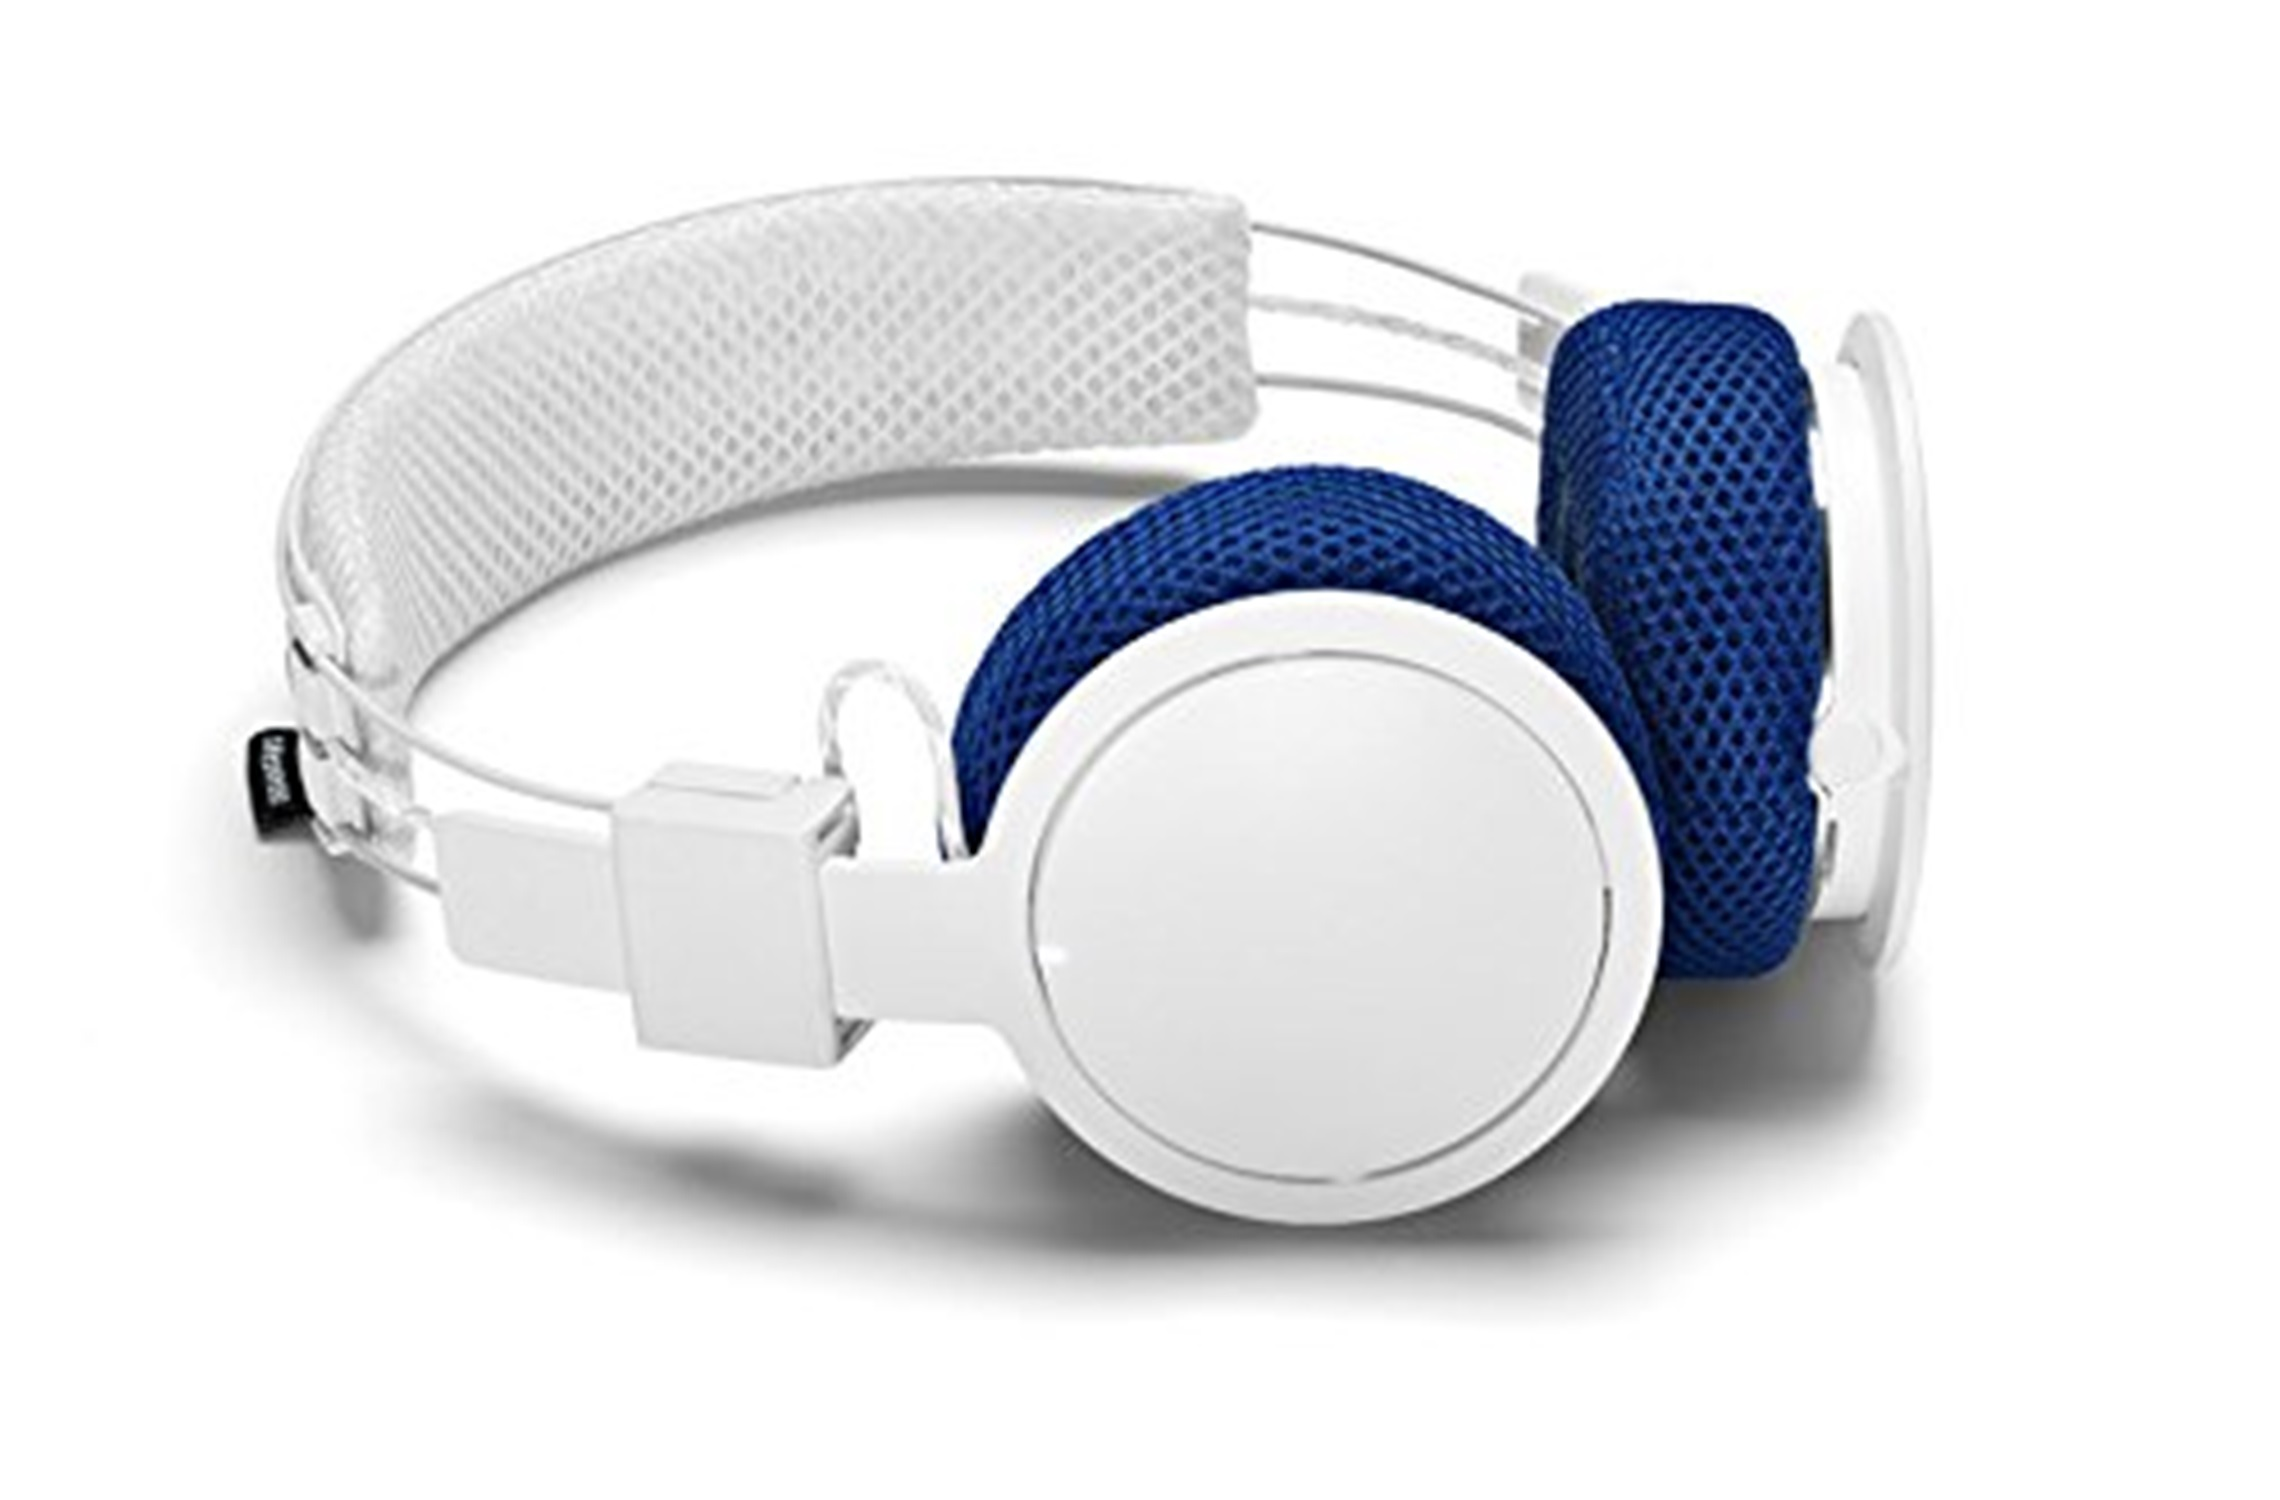 URBANEARS - ACCESSORI AUDIO - 7340055315876